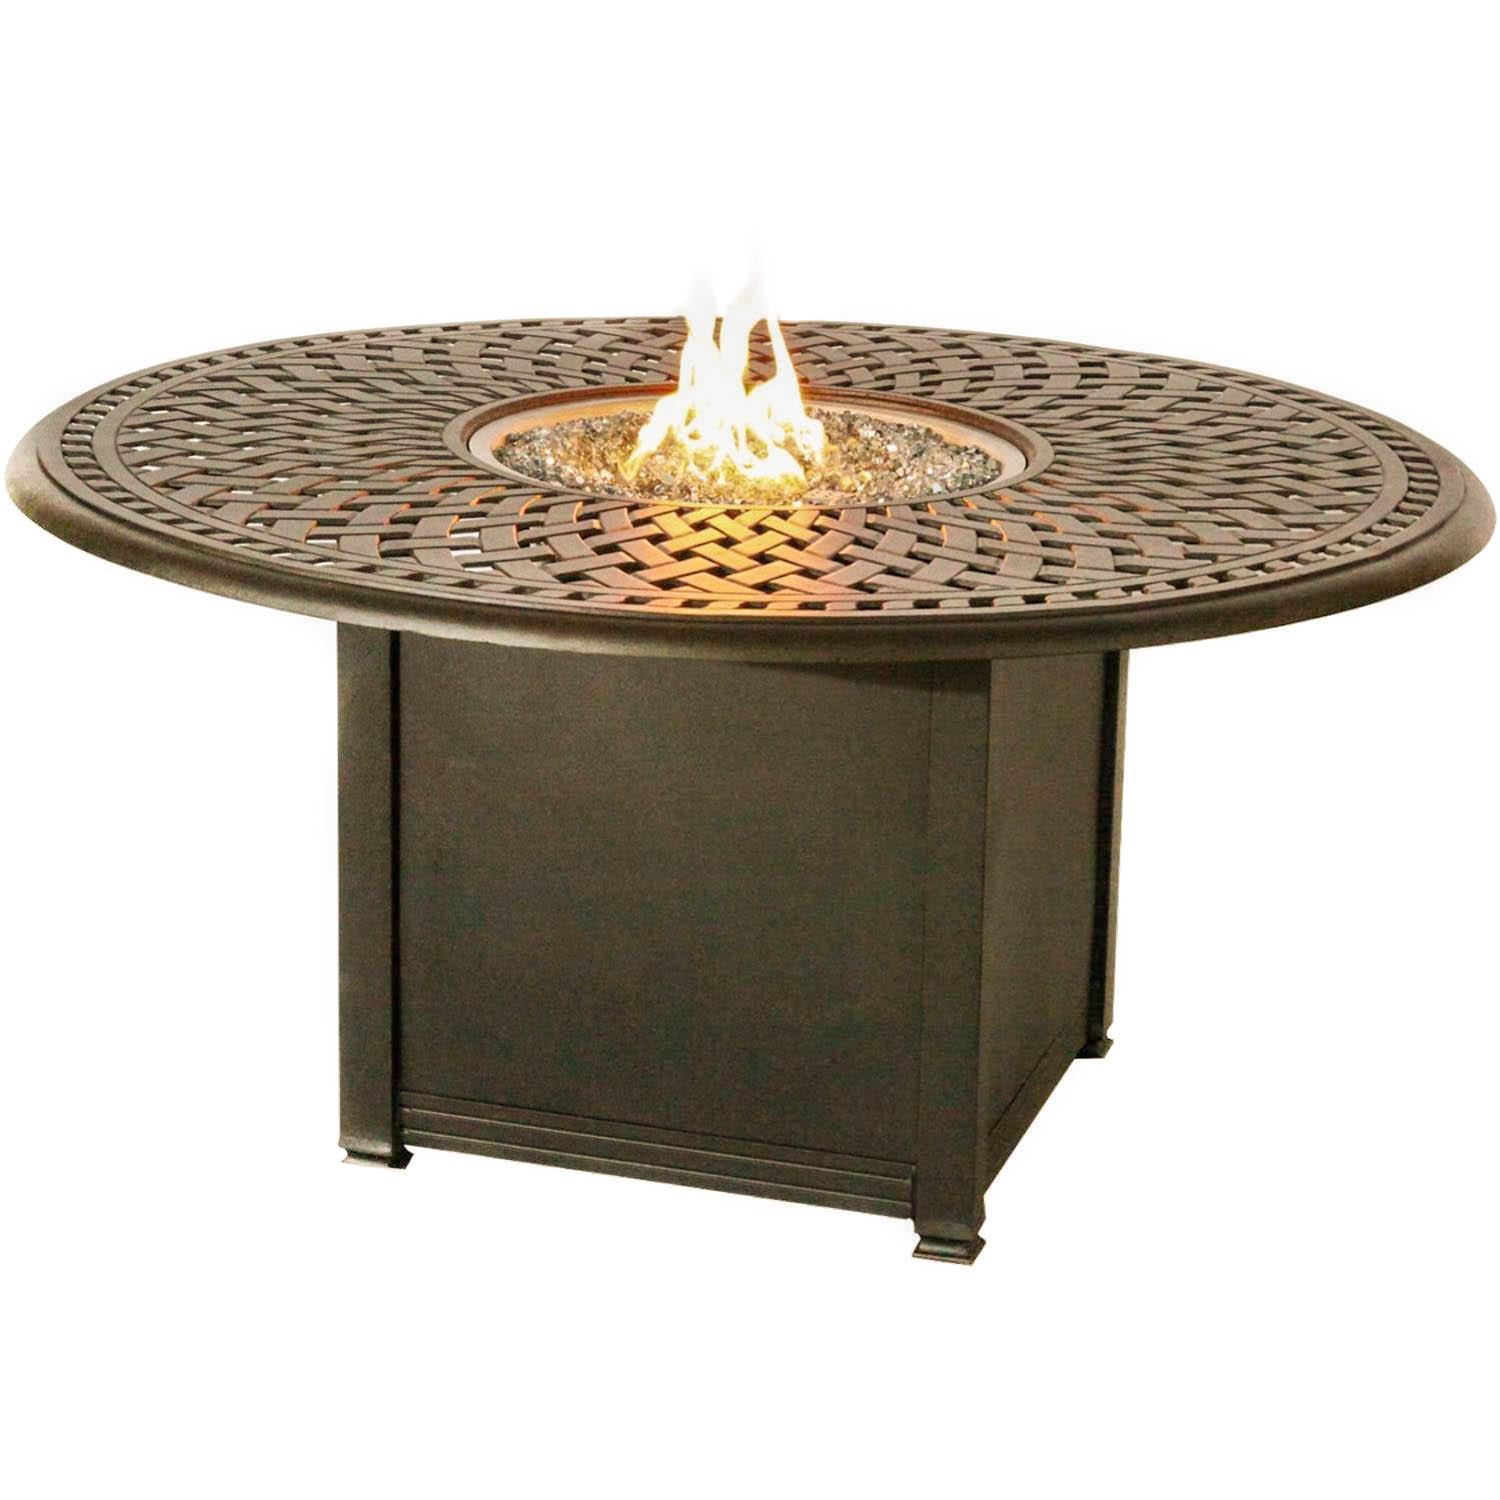 Signature 60-Inch Propane Fire Pit Dining Table By Darlee...